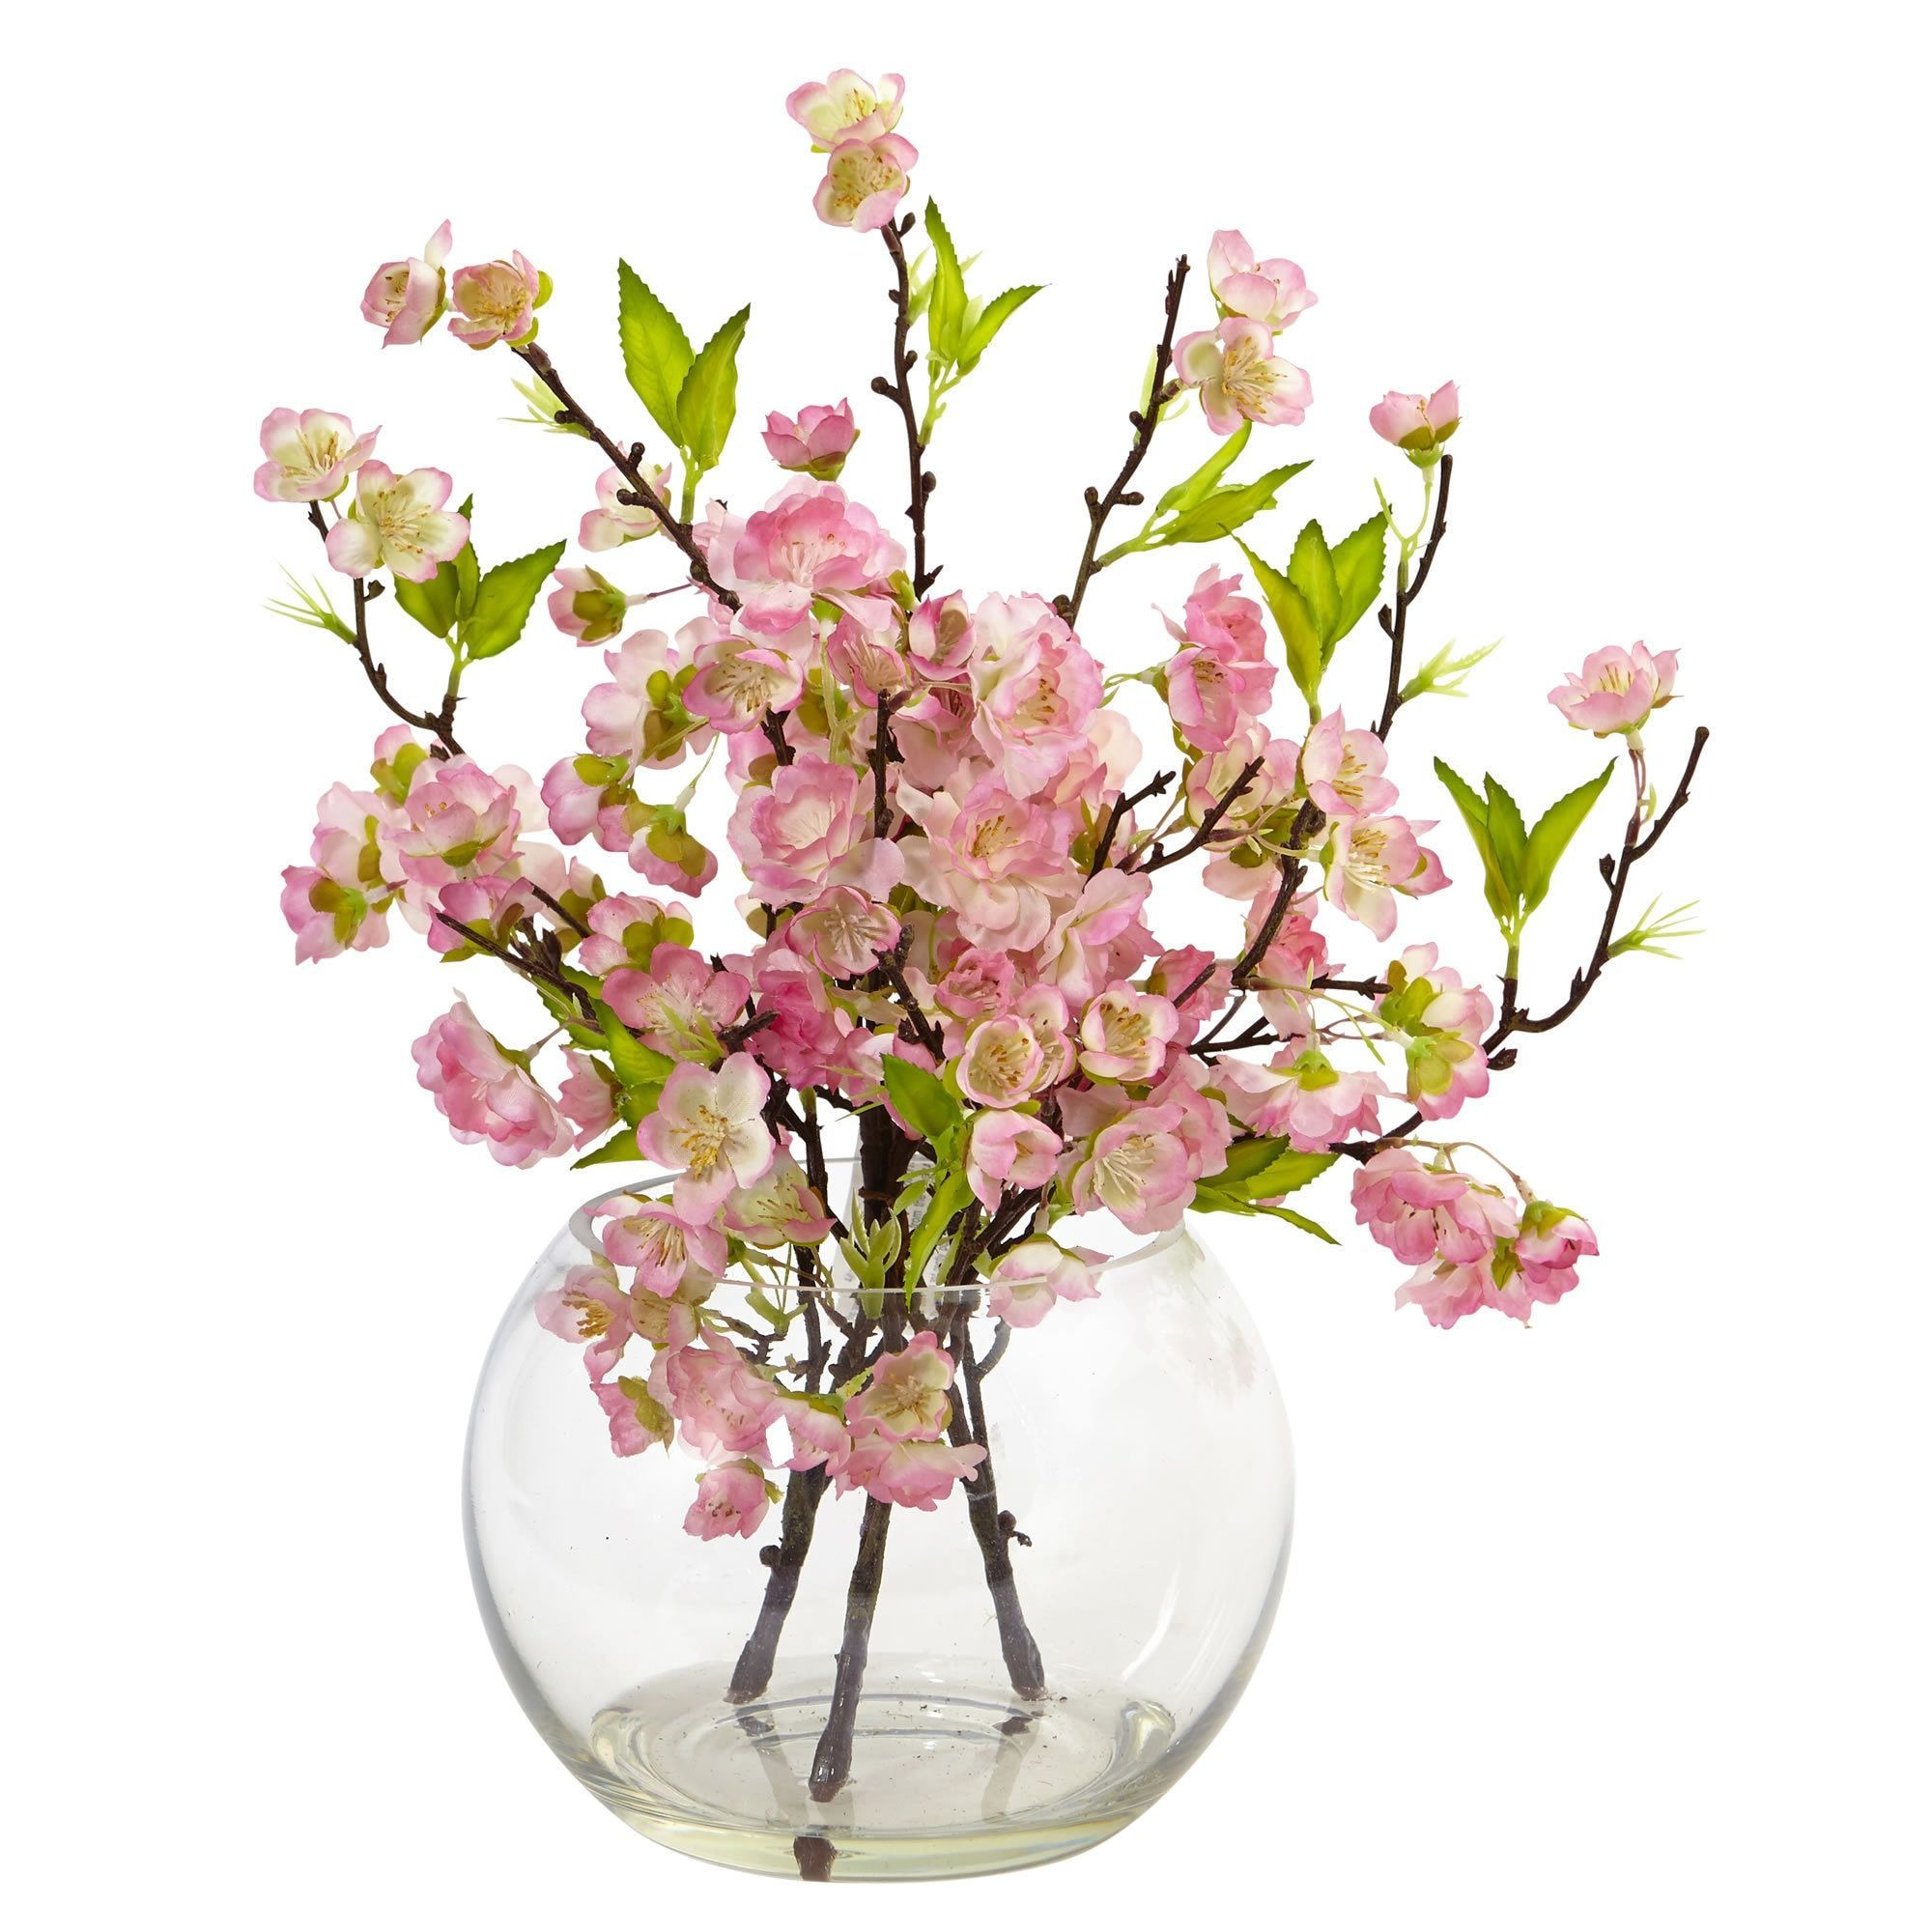 Overstock Com Online Shopping Bedding Furniture Electronics Jewelry Clothing More Vase Arrangements Large Glass Vase Flower Arrangements